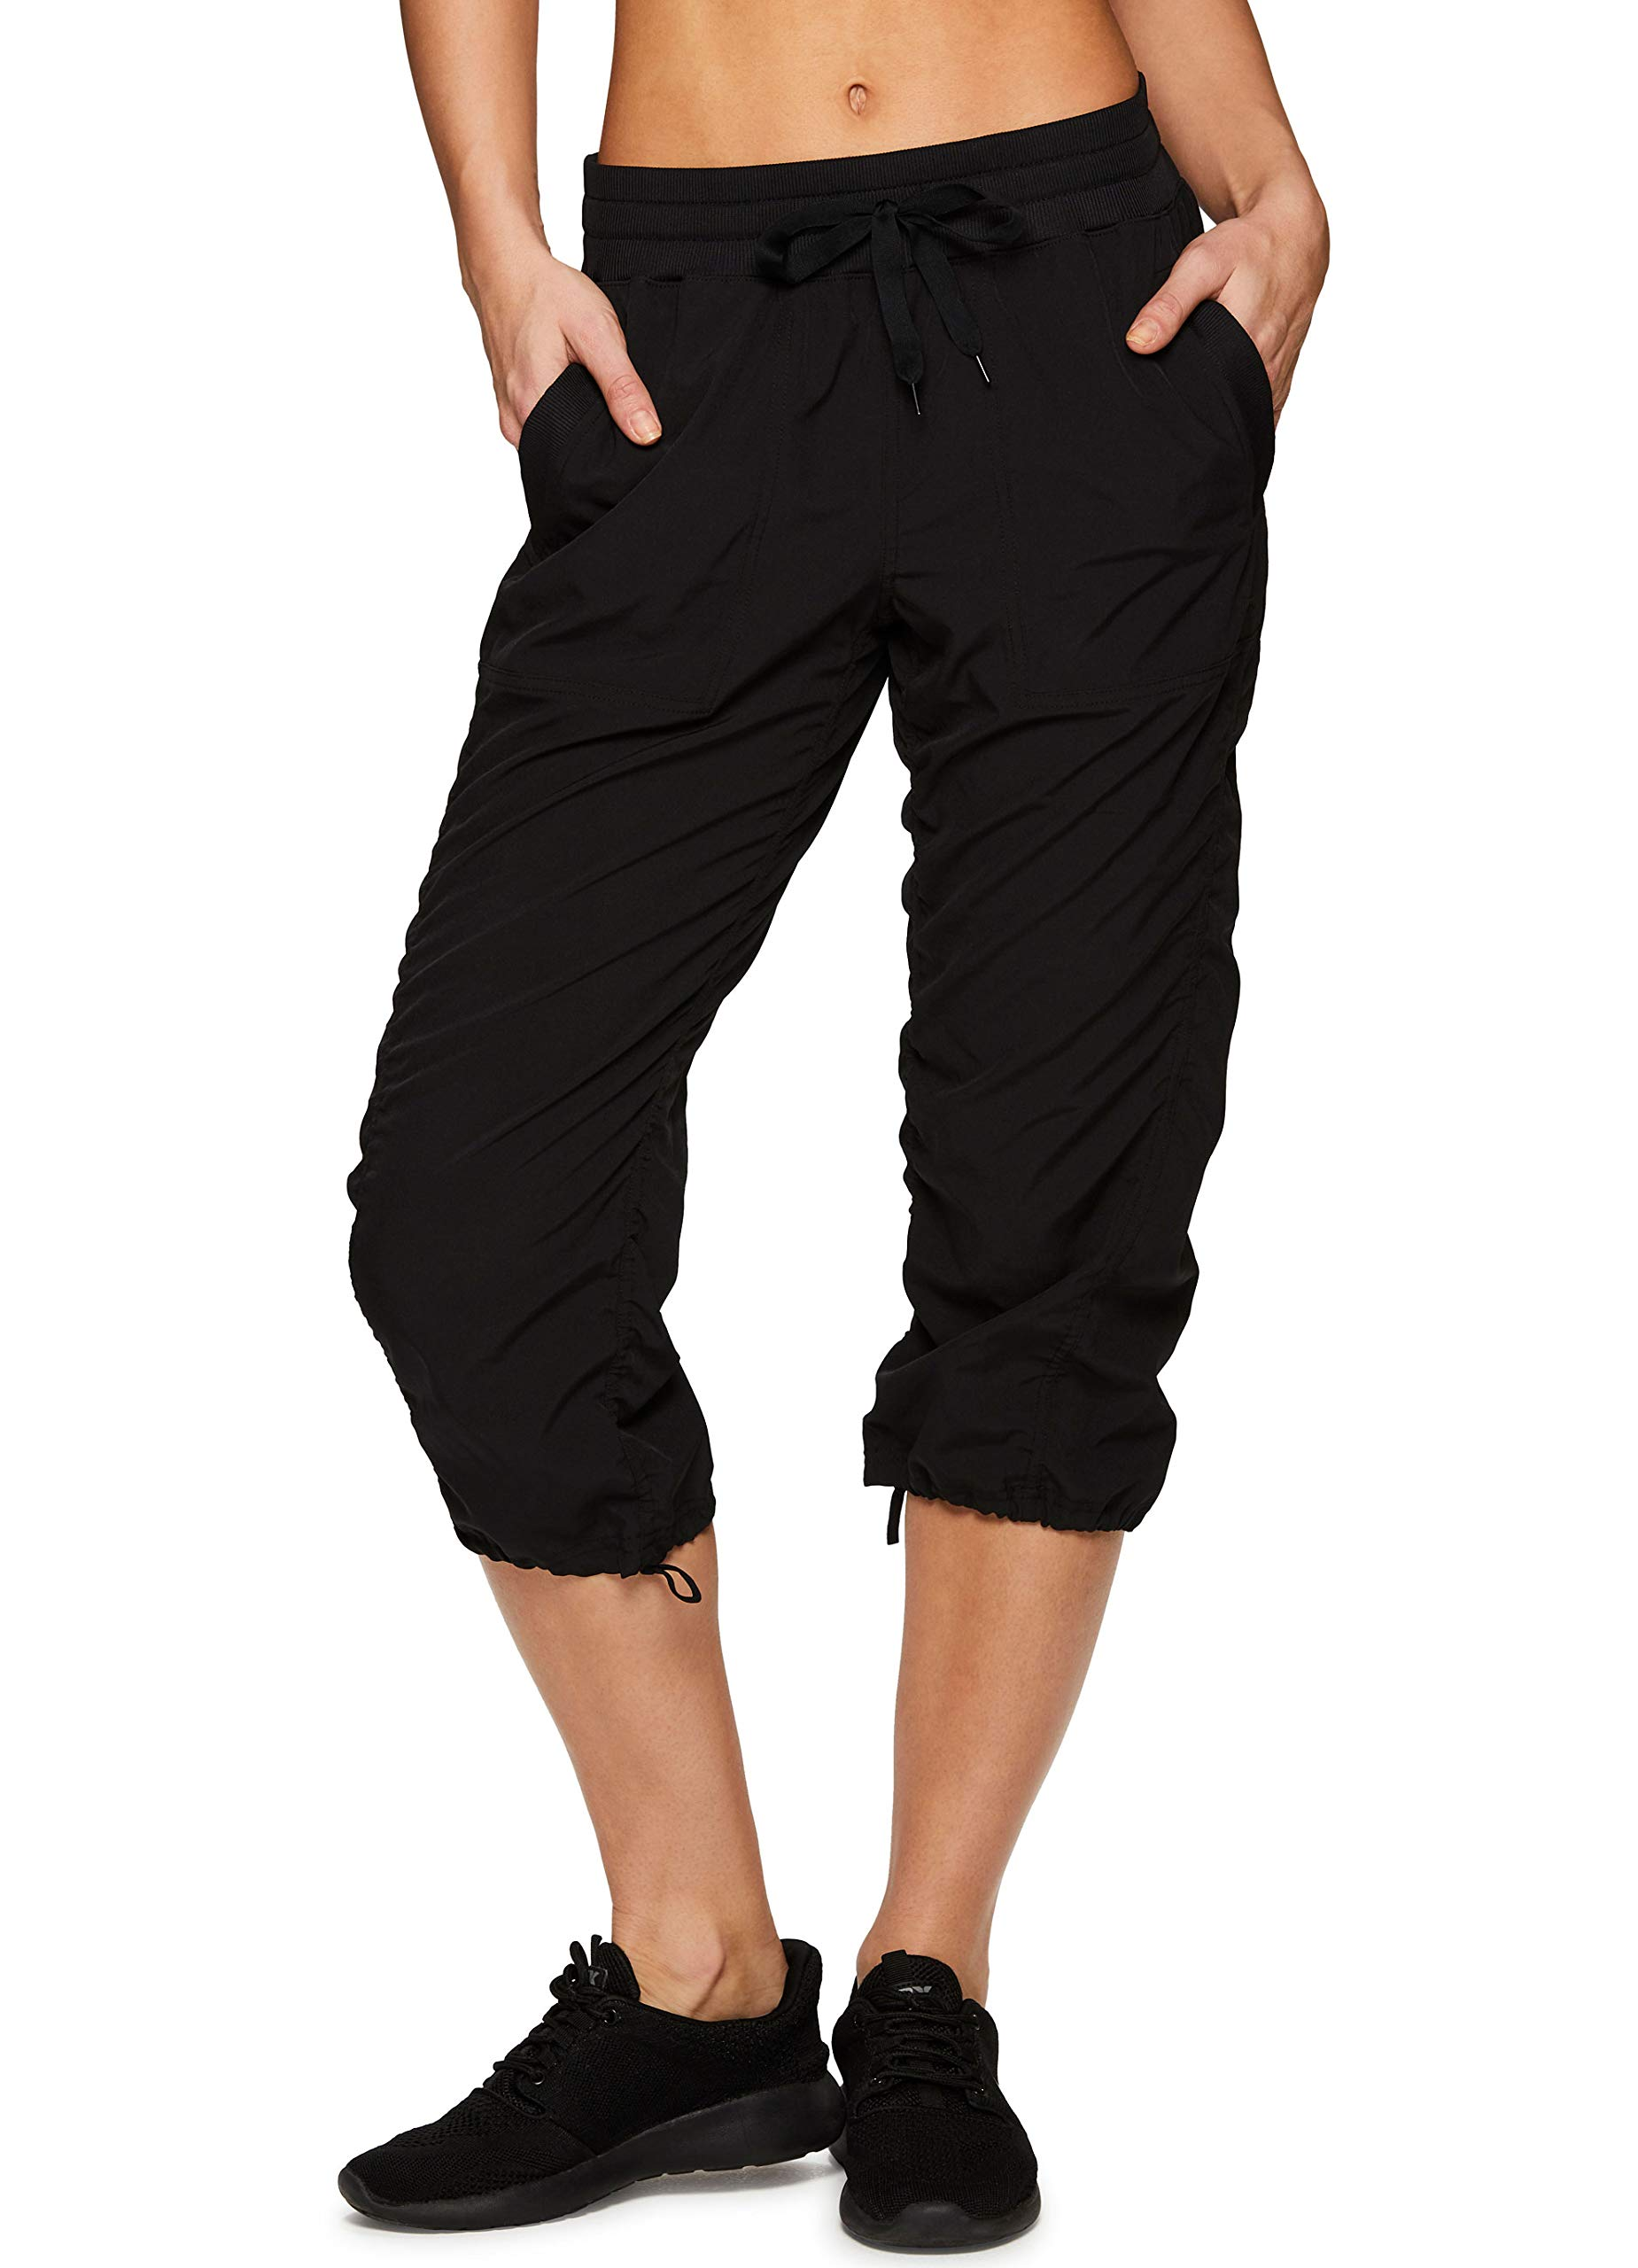 RBX Active Women's Lightweight Body Skimming Drawstring Zumba Pant,Large,Black by RBX